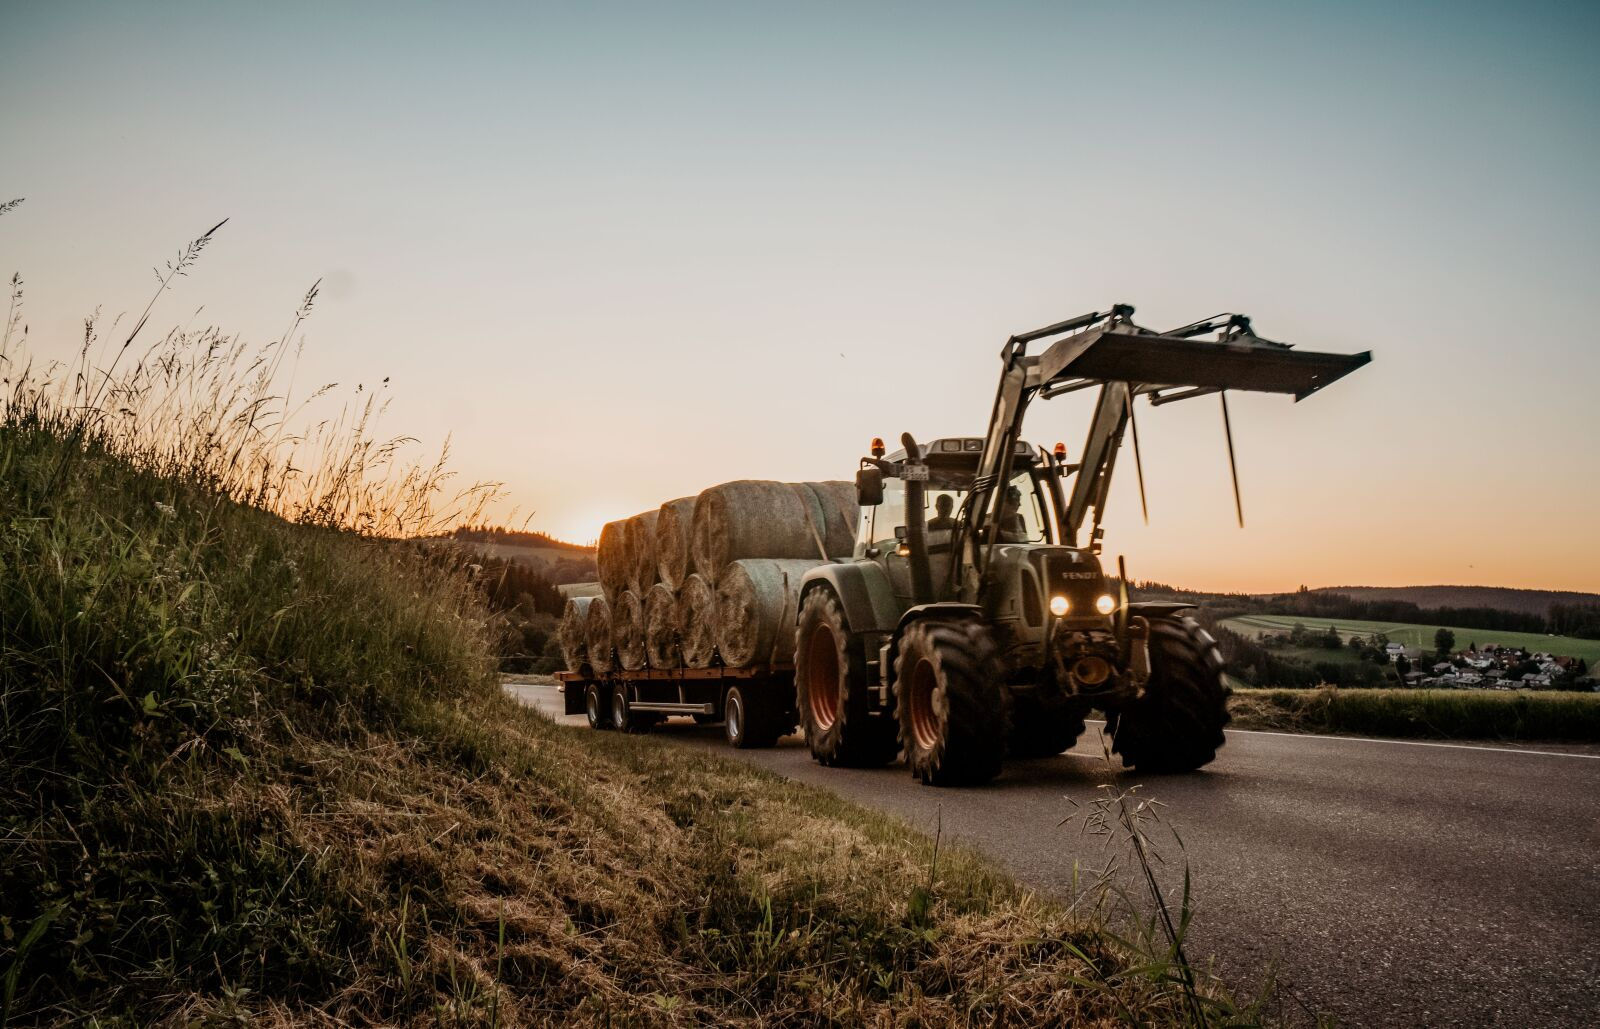 """Sony a6300 sample photo. """"Tractor, sun, agriculture"""" photography"""